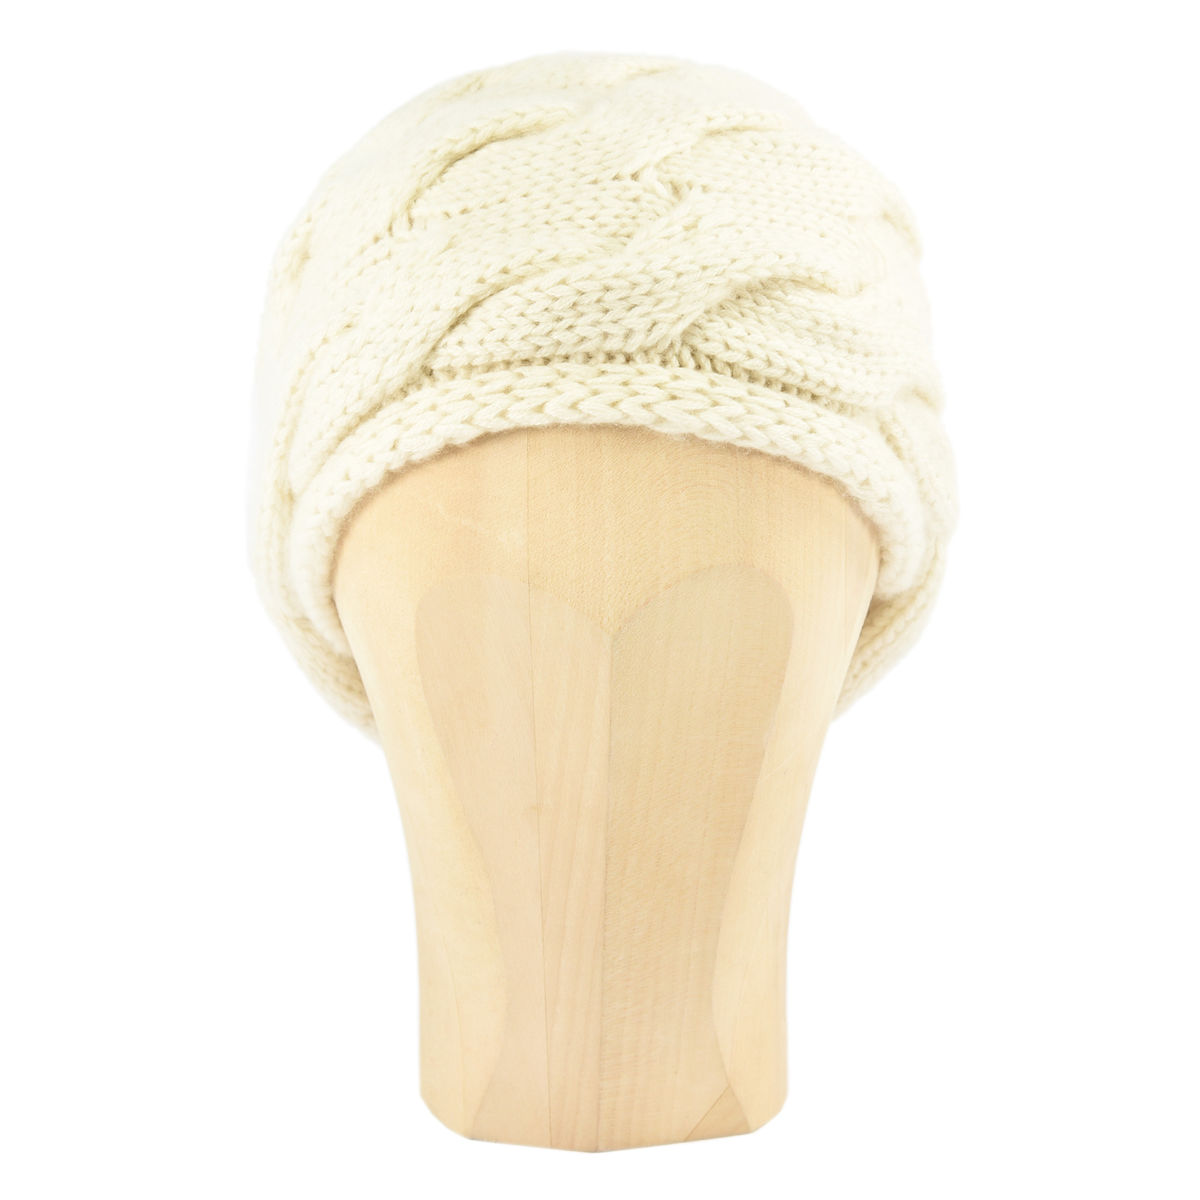 Chunky Braid Beanie - Panna - product images  of